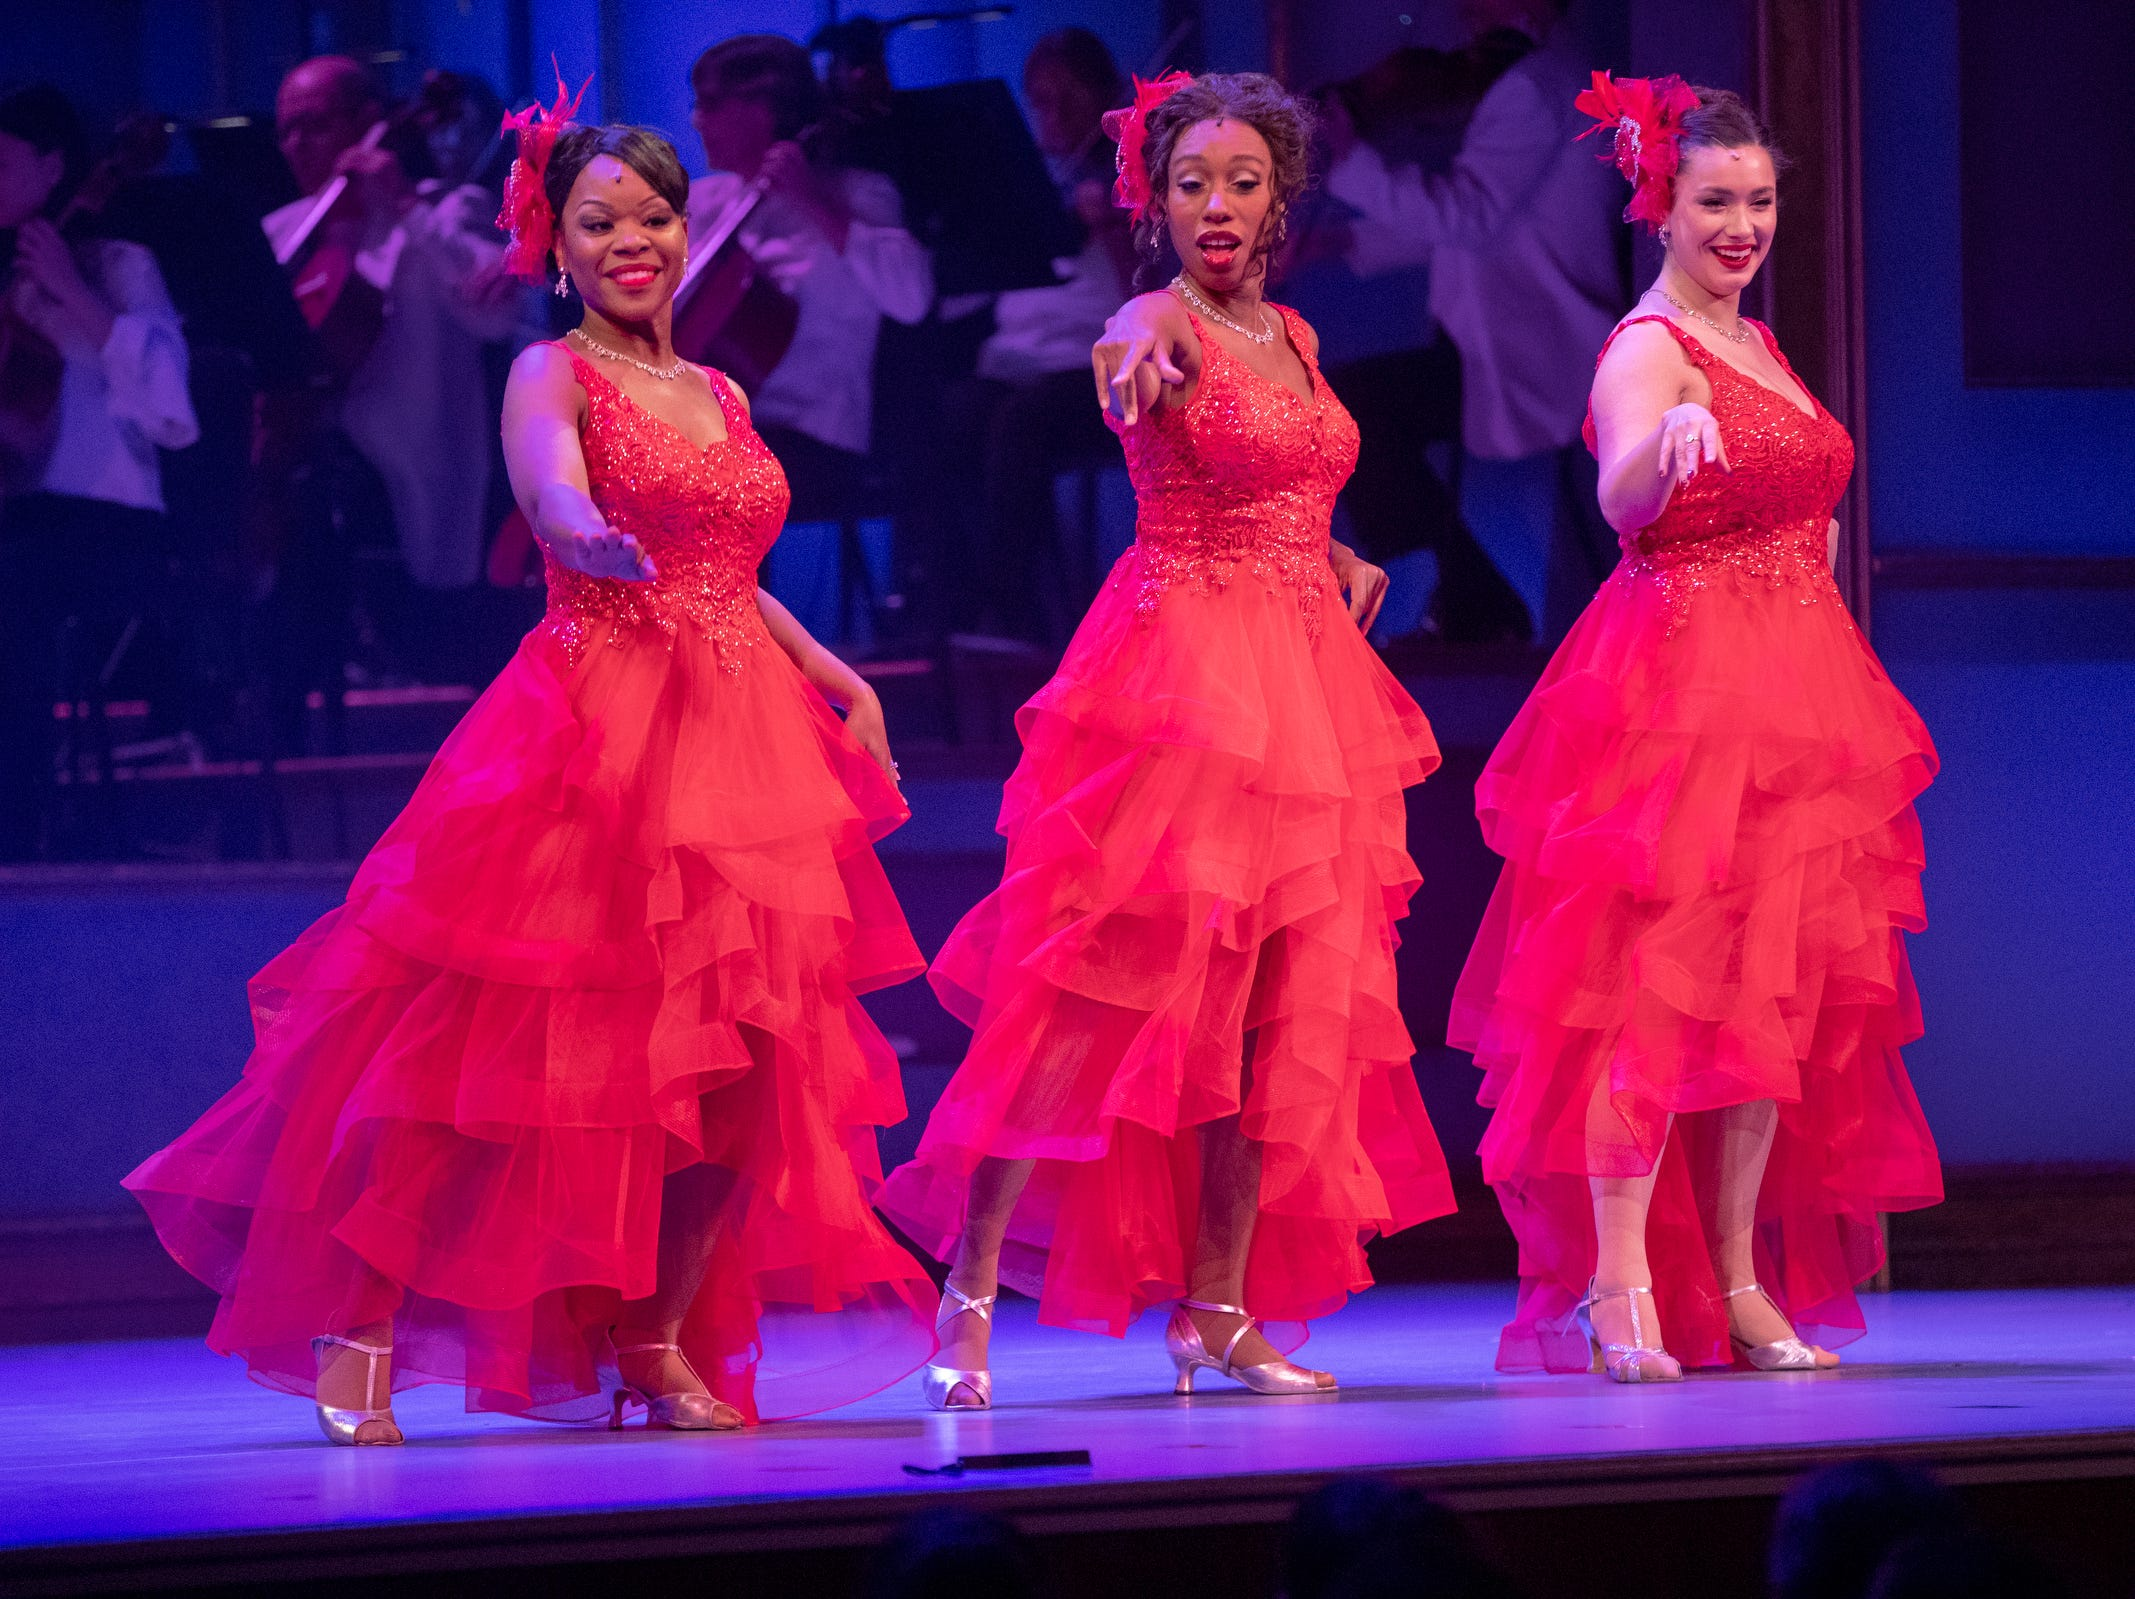 The Jingle Belles perform at Yuletide Celebration, showcasing the Indianapolis Symphony Orchestra, at Hilbert Circle Theater, Indianapolis, Sunday. Dec. 23, 2018. The extravaganza features dancing, holiday songs, and skits.